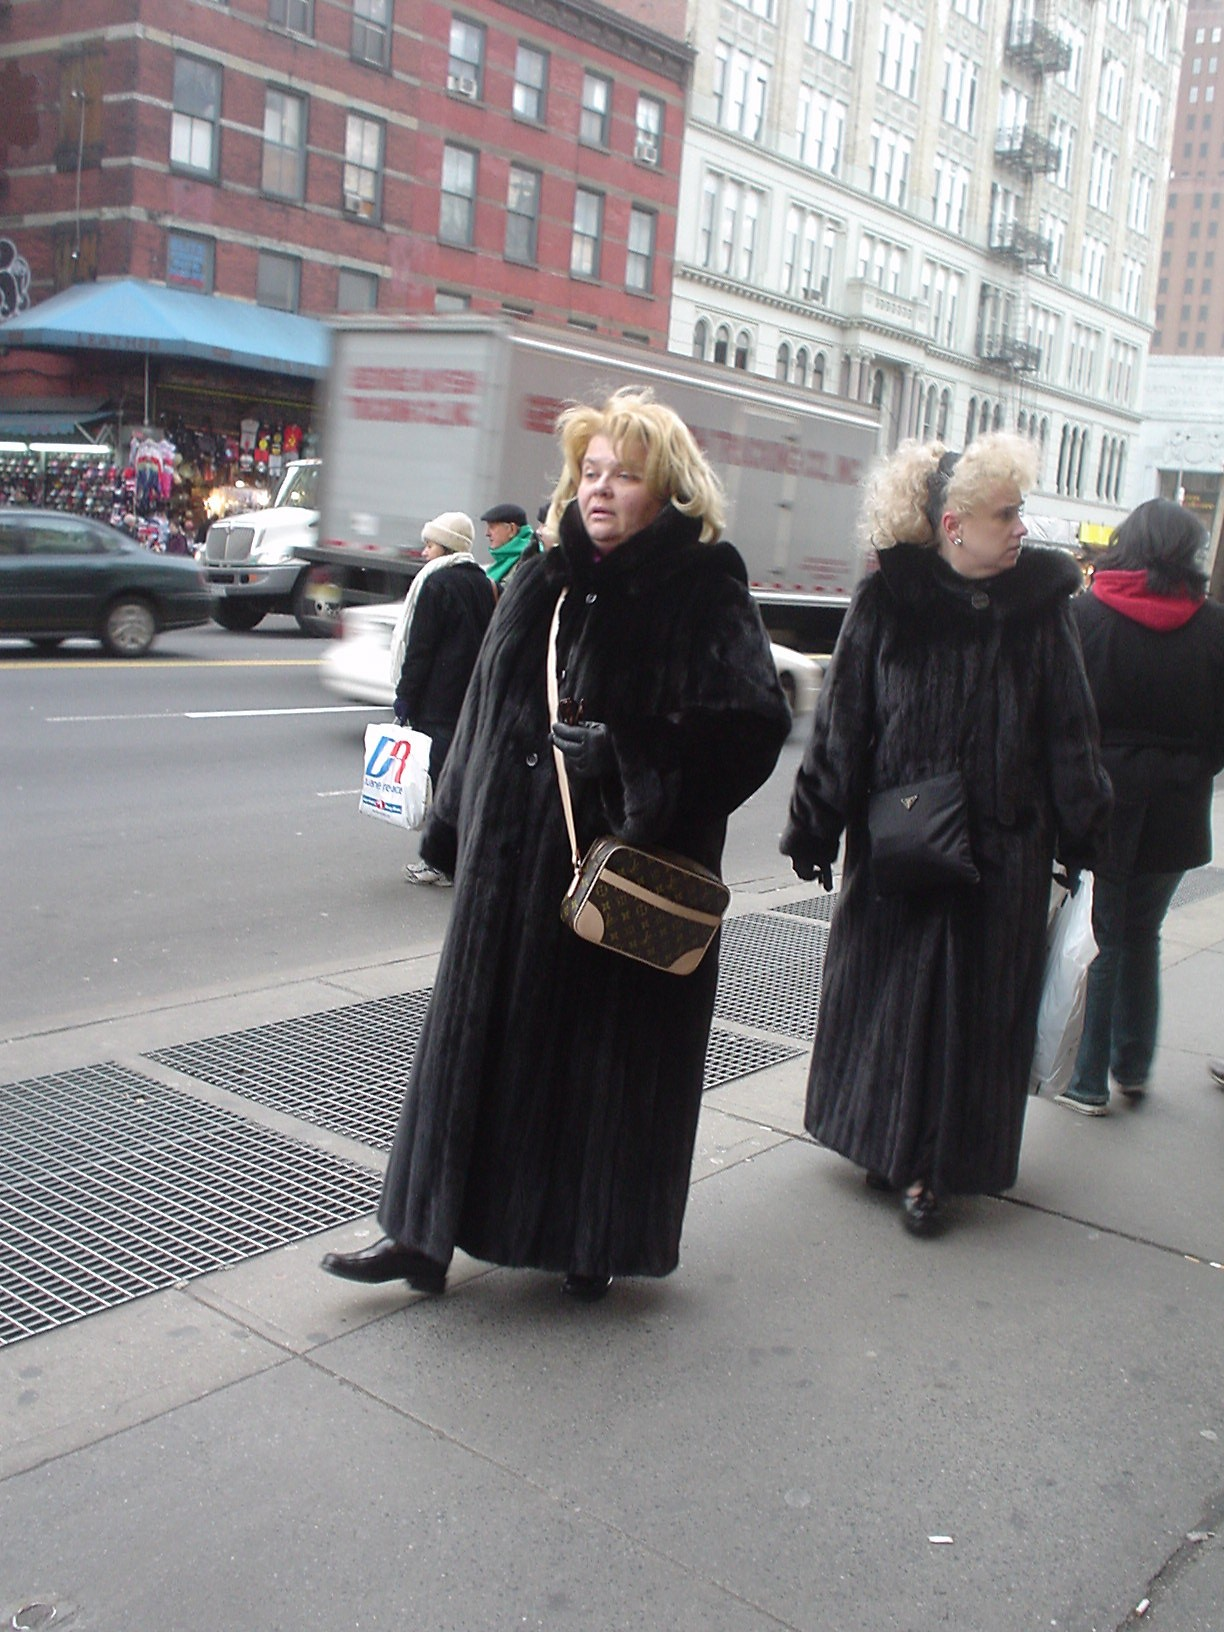 Blonde women in black fur coats